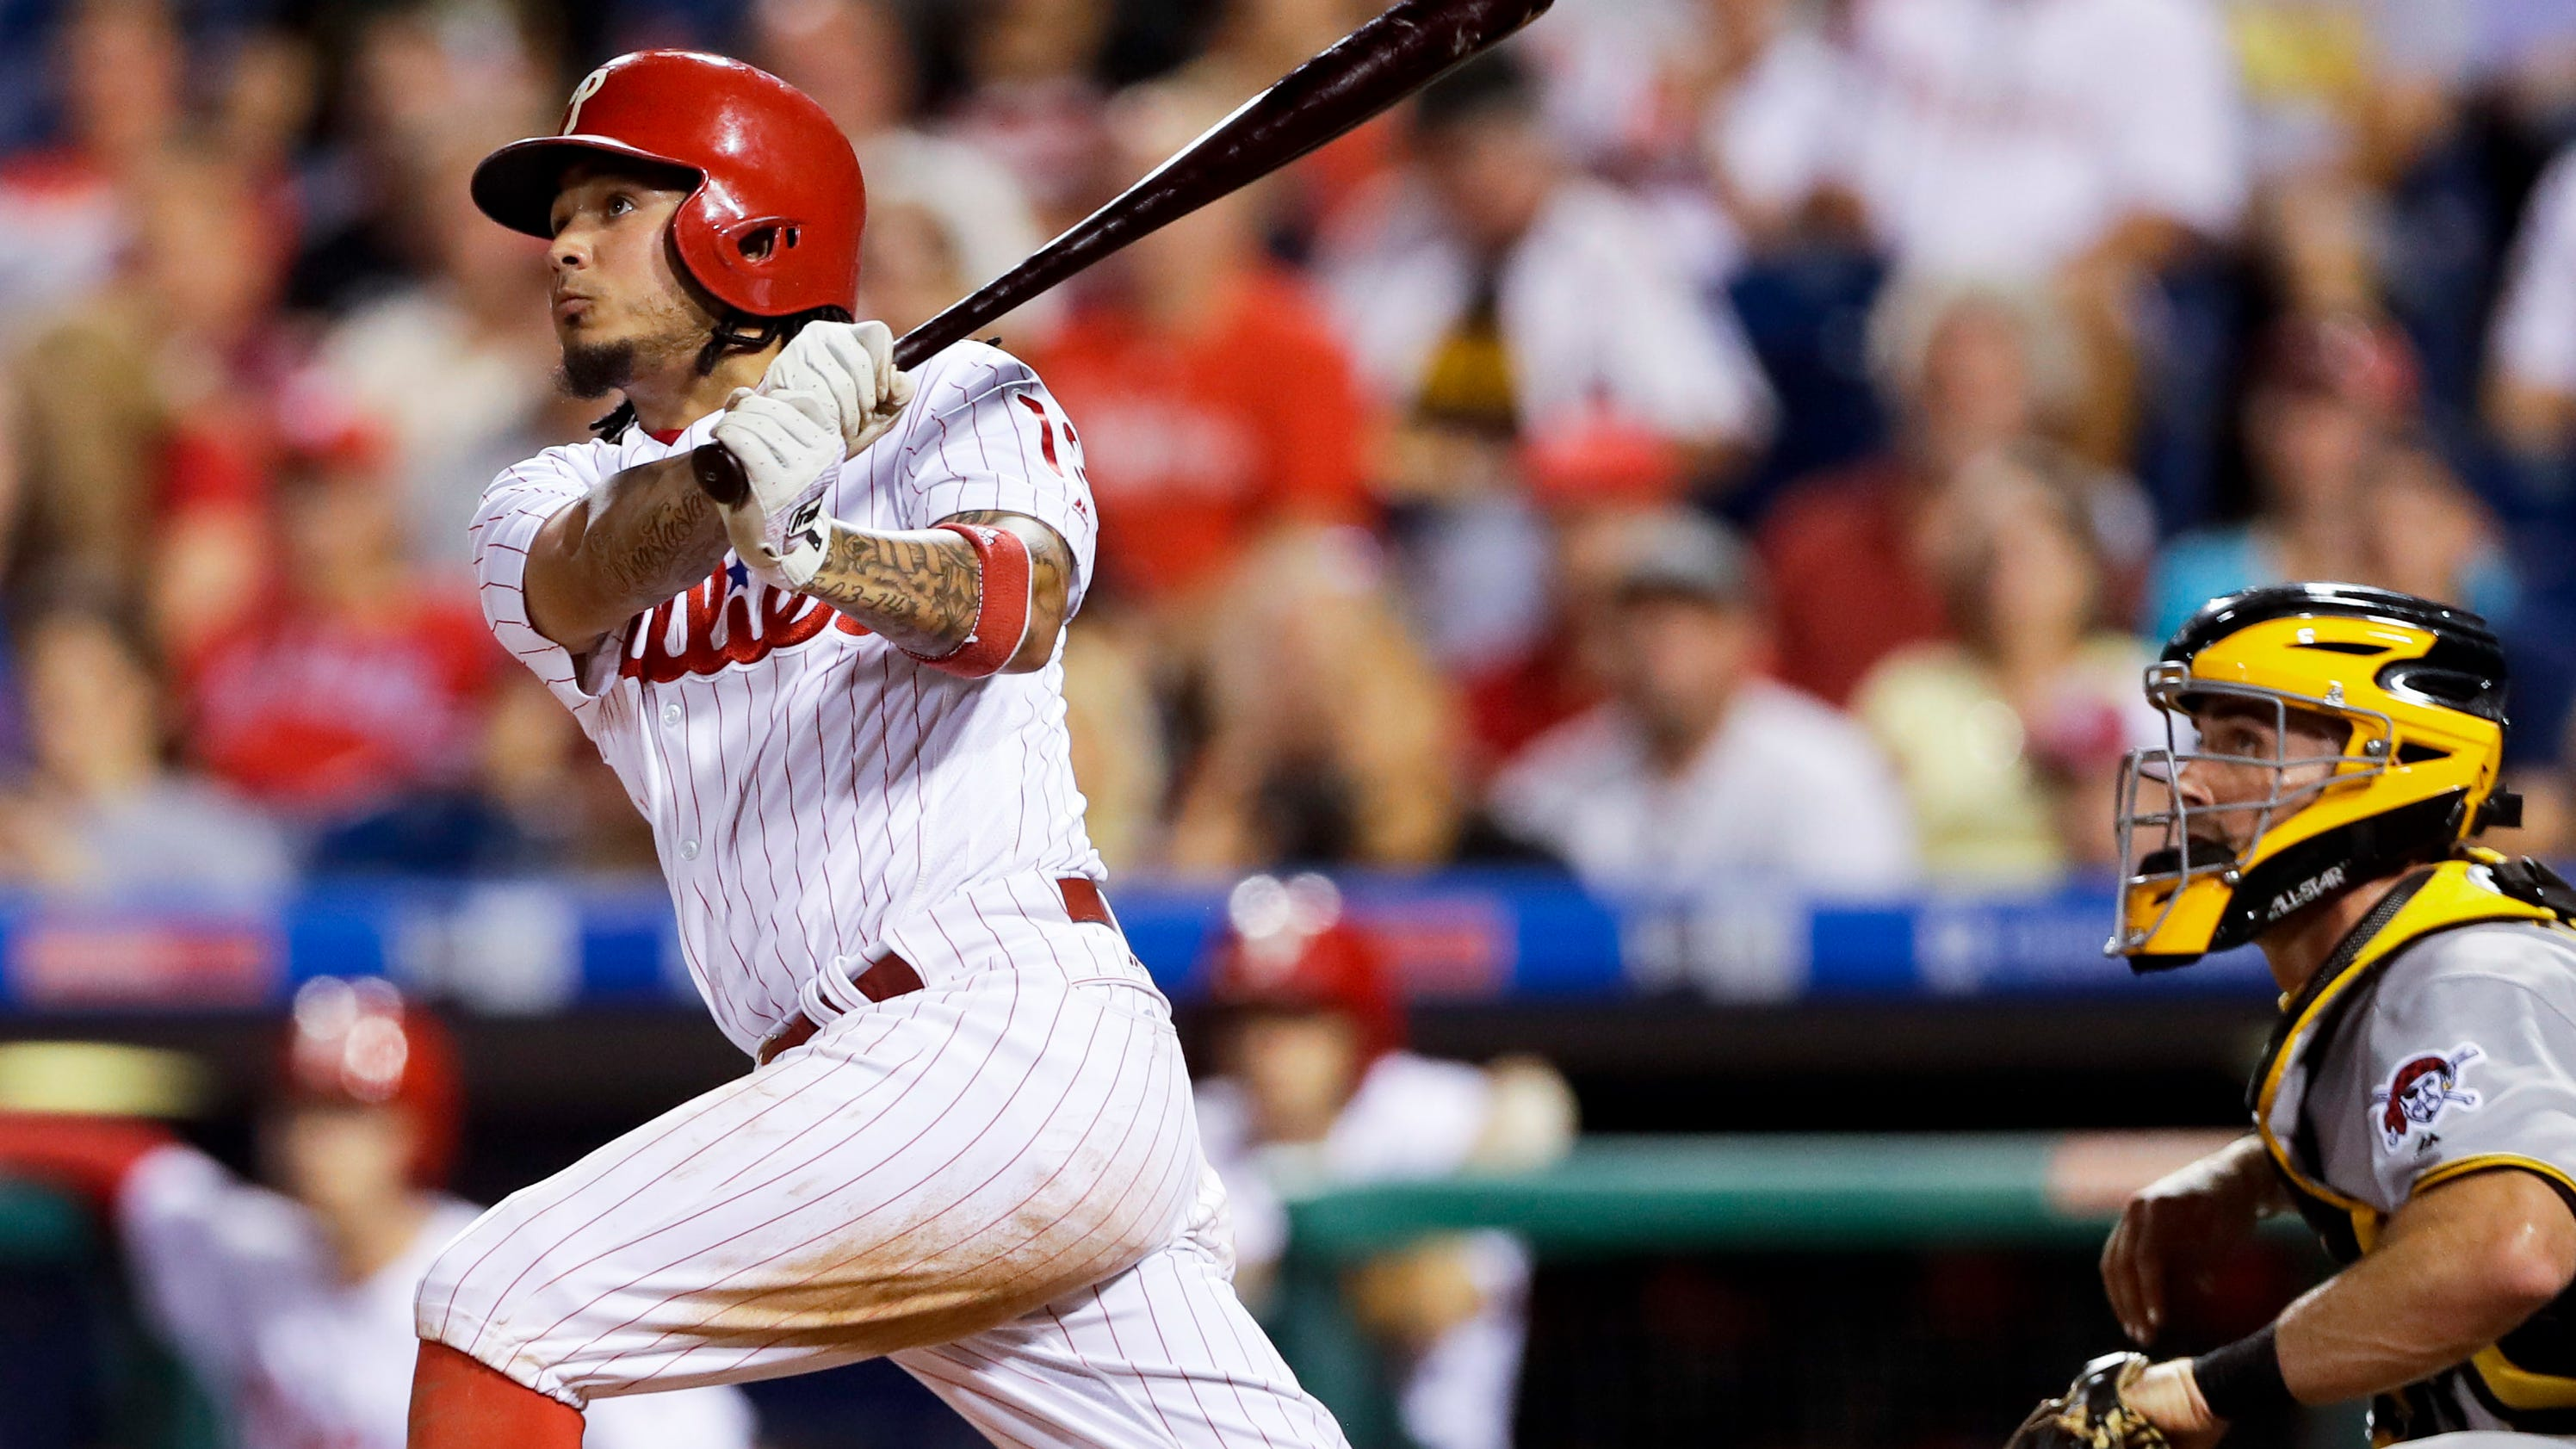 Galvis isn't worrying about losing starting job on Phillies